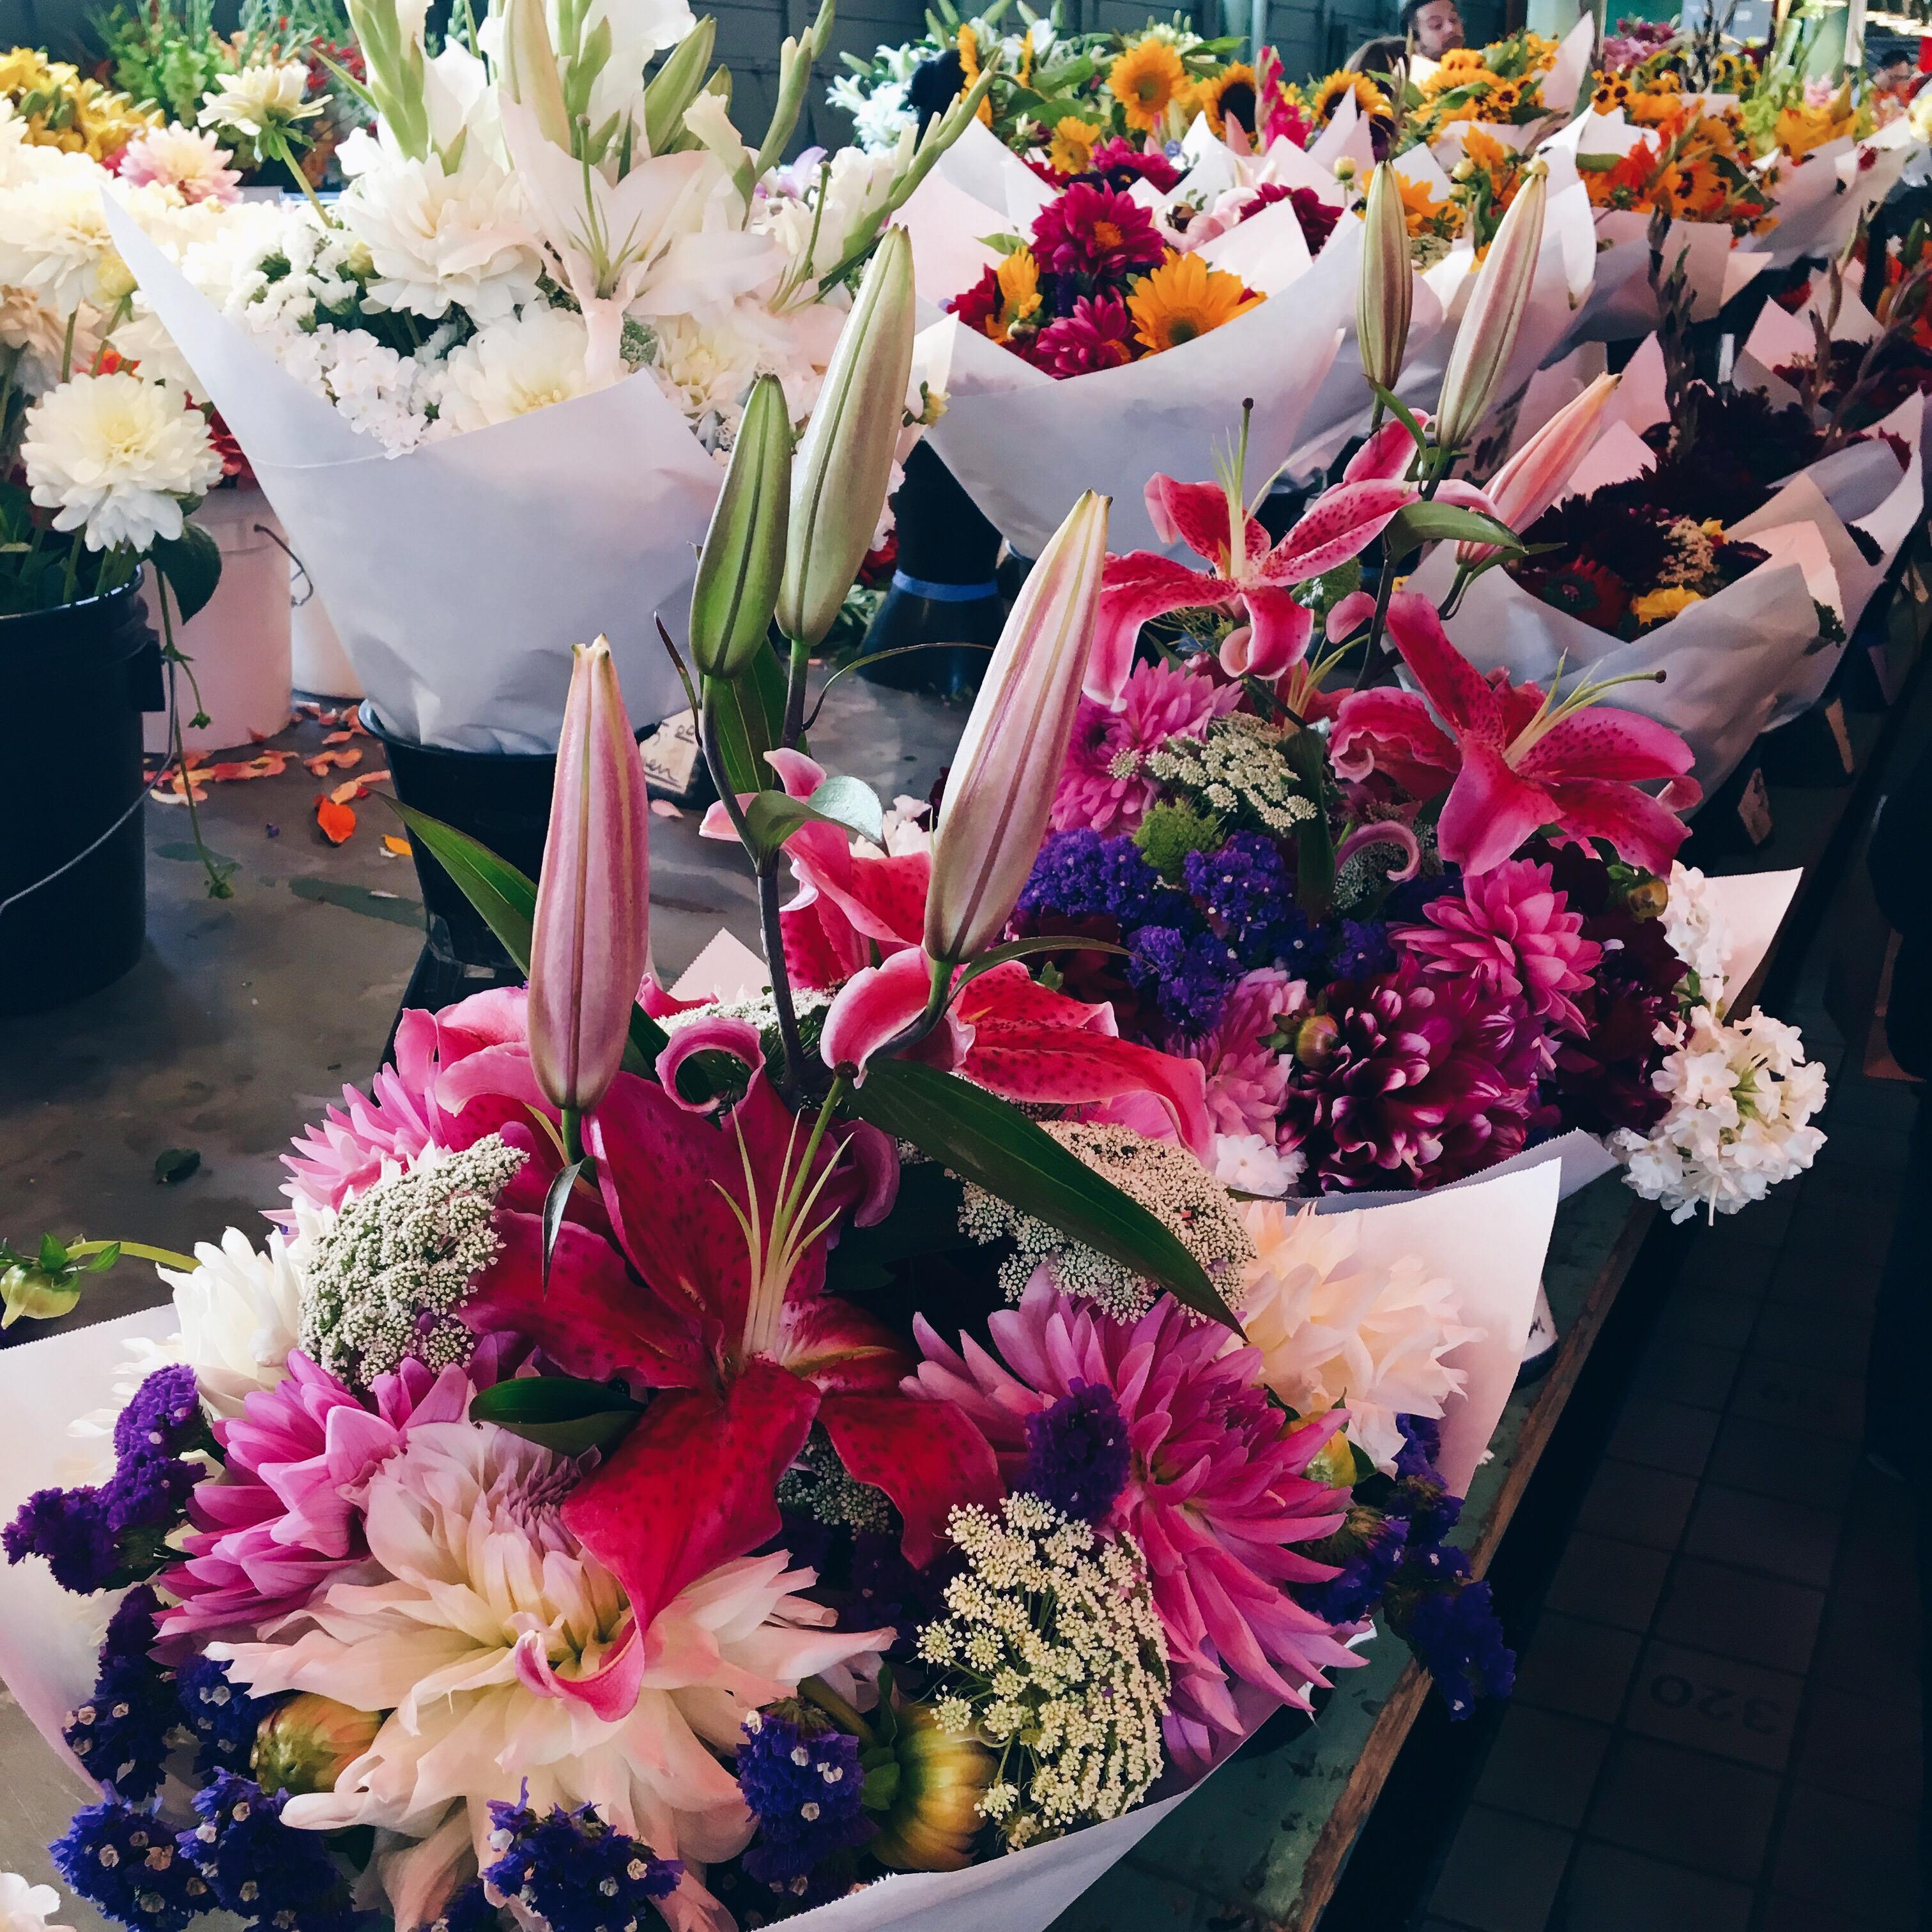 Pike's Place Market. Such beautiful flowers for long stretches.